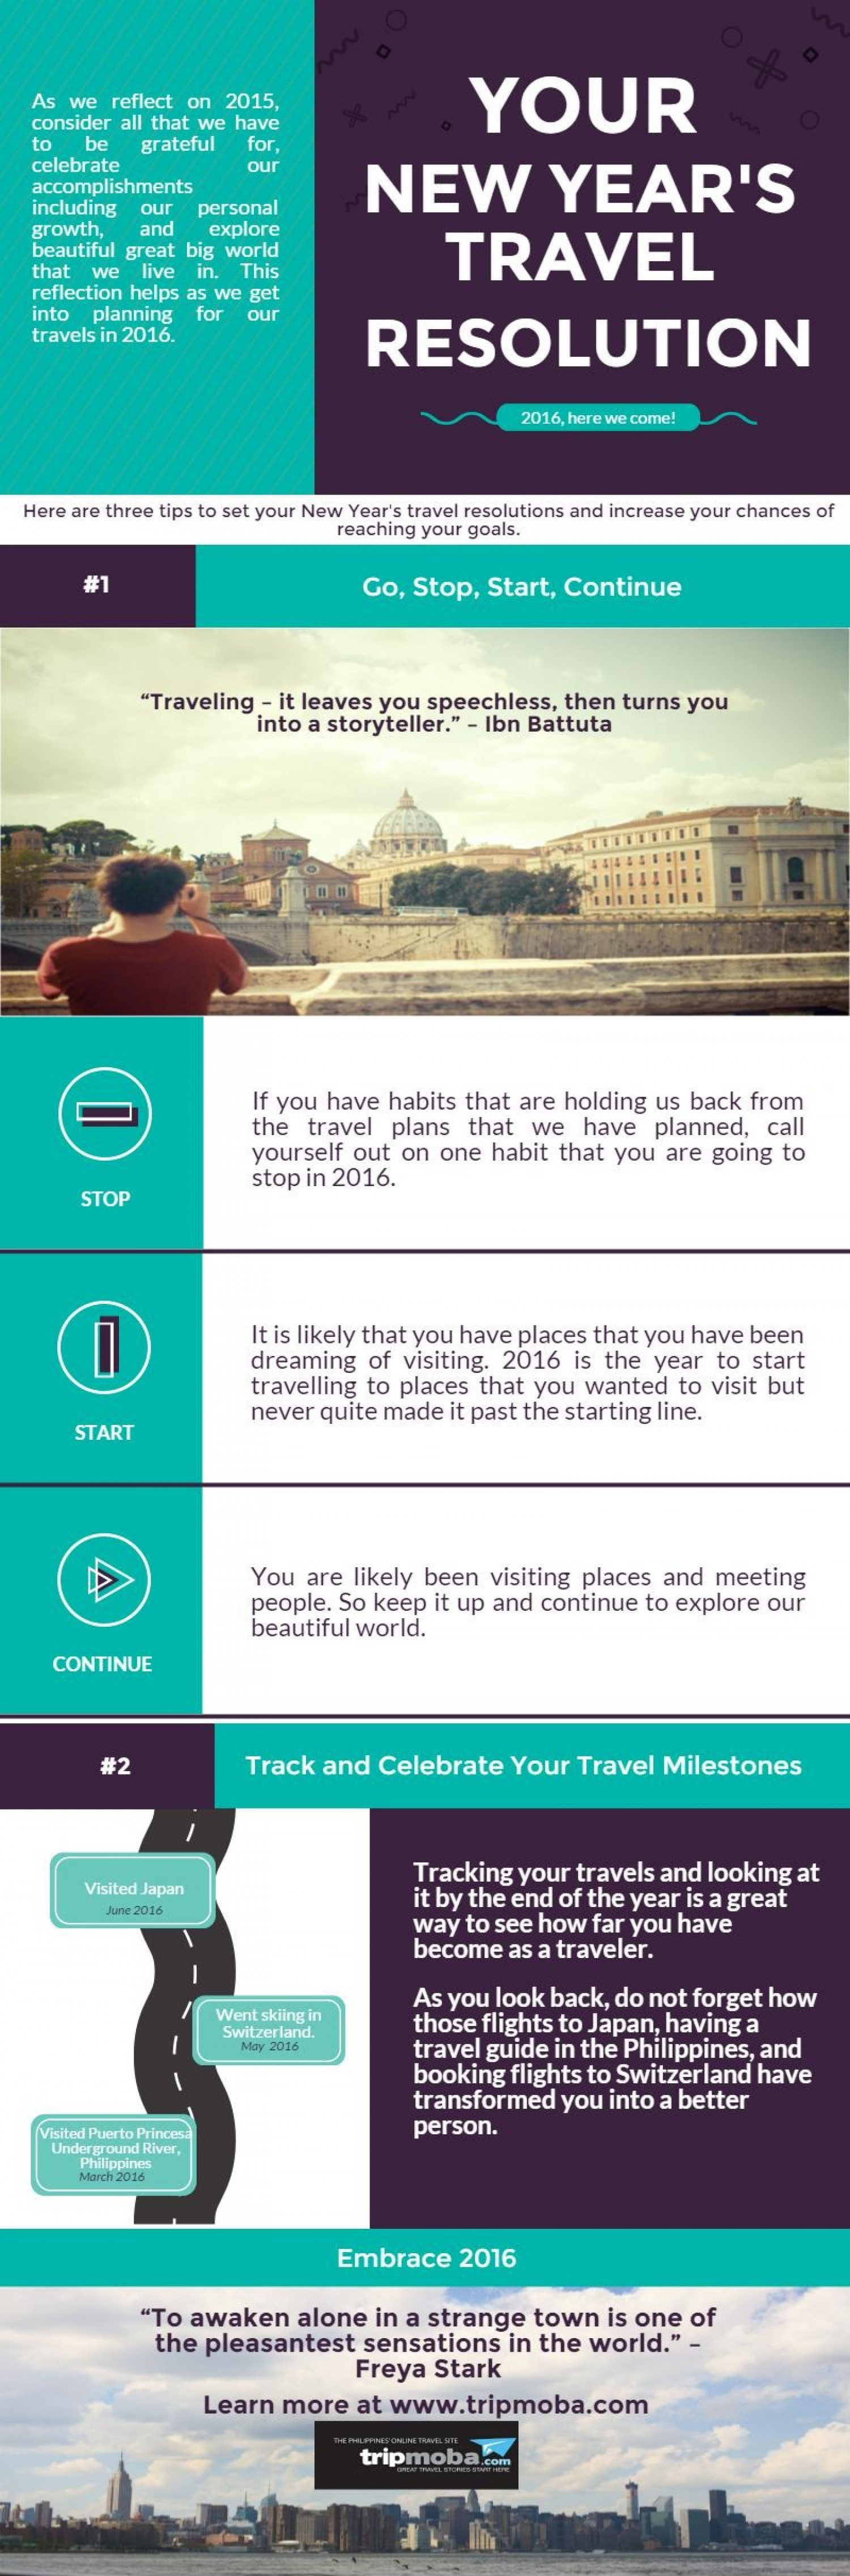 Your New Year's Travel Resolution Infographic